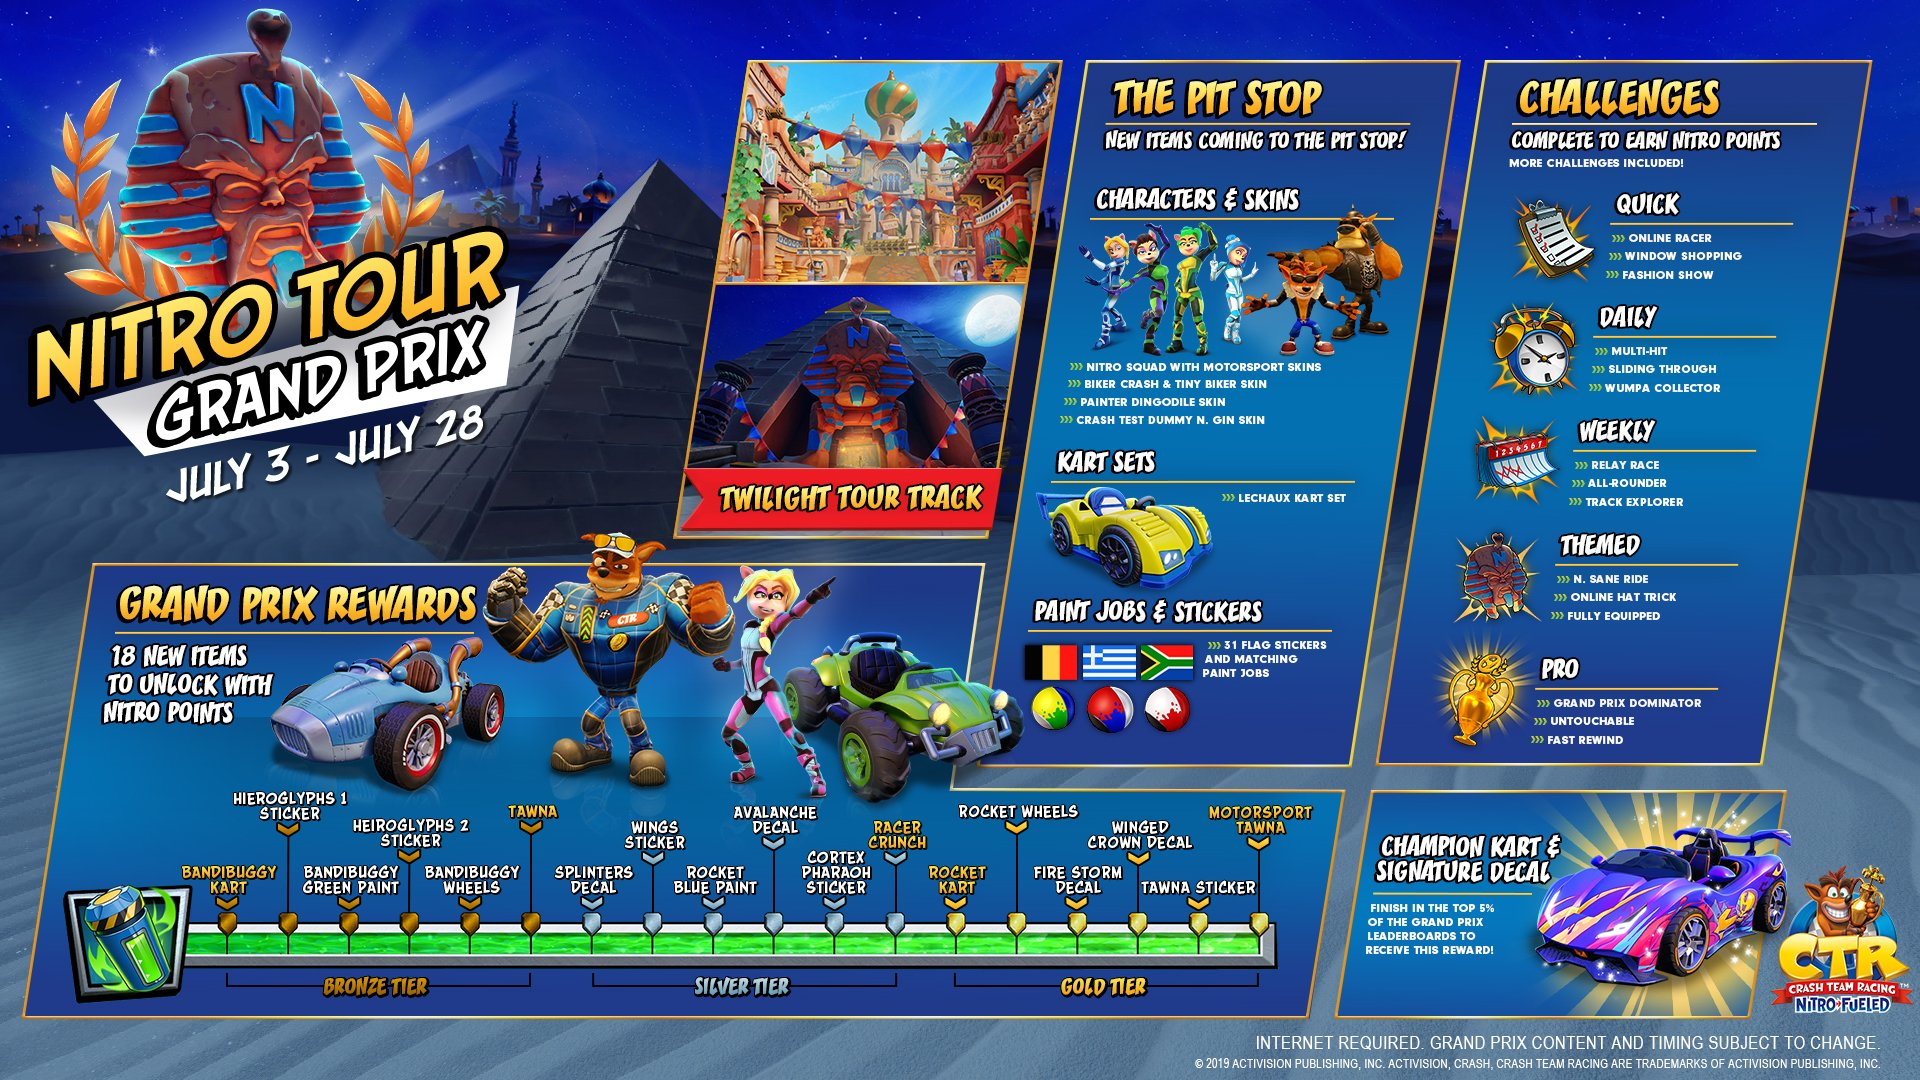 Ya ha llegado el primer gran evento de Crash Team Racing Nitro Fueled: Grand Prix